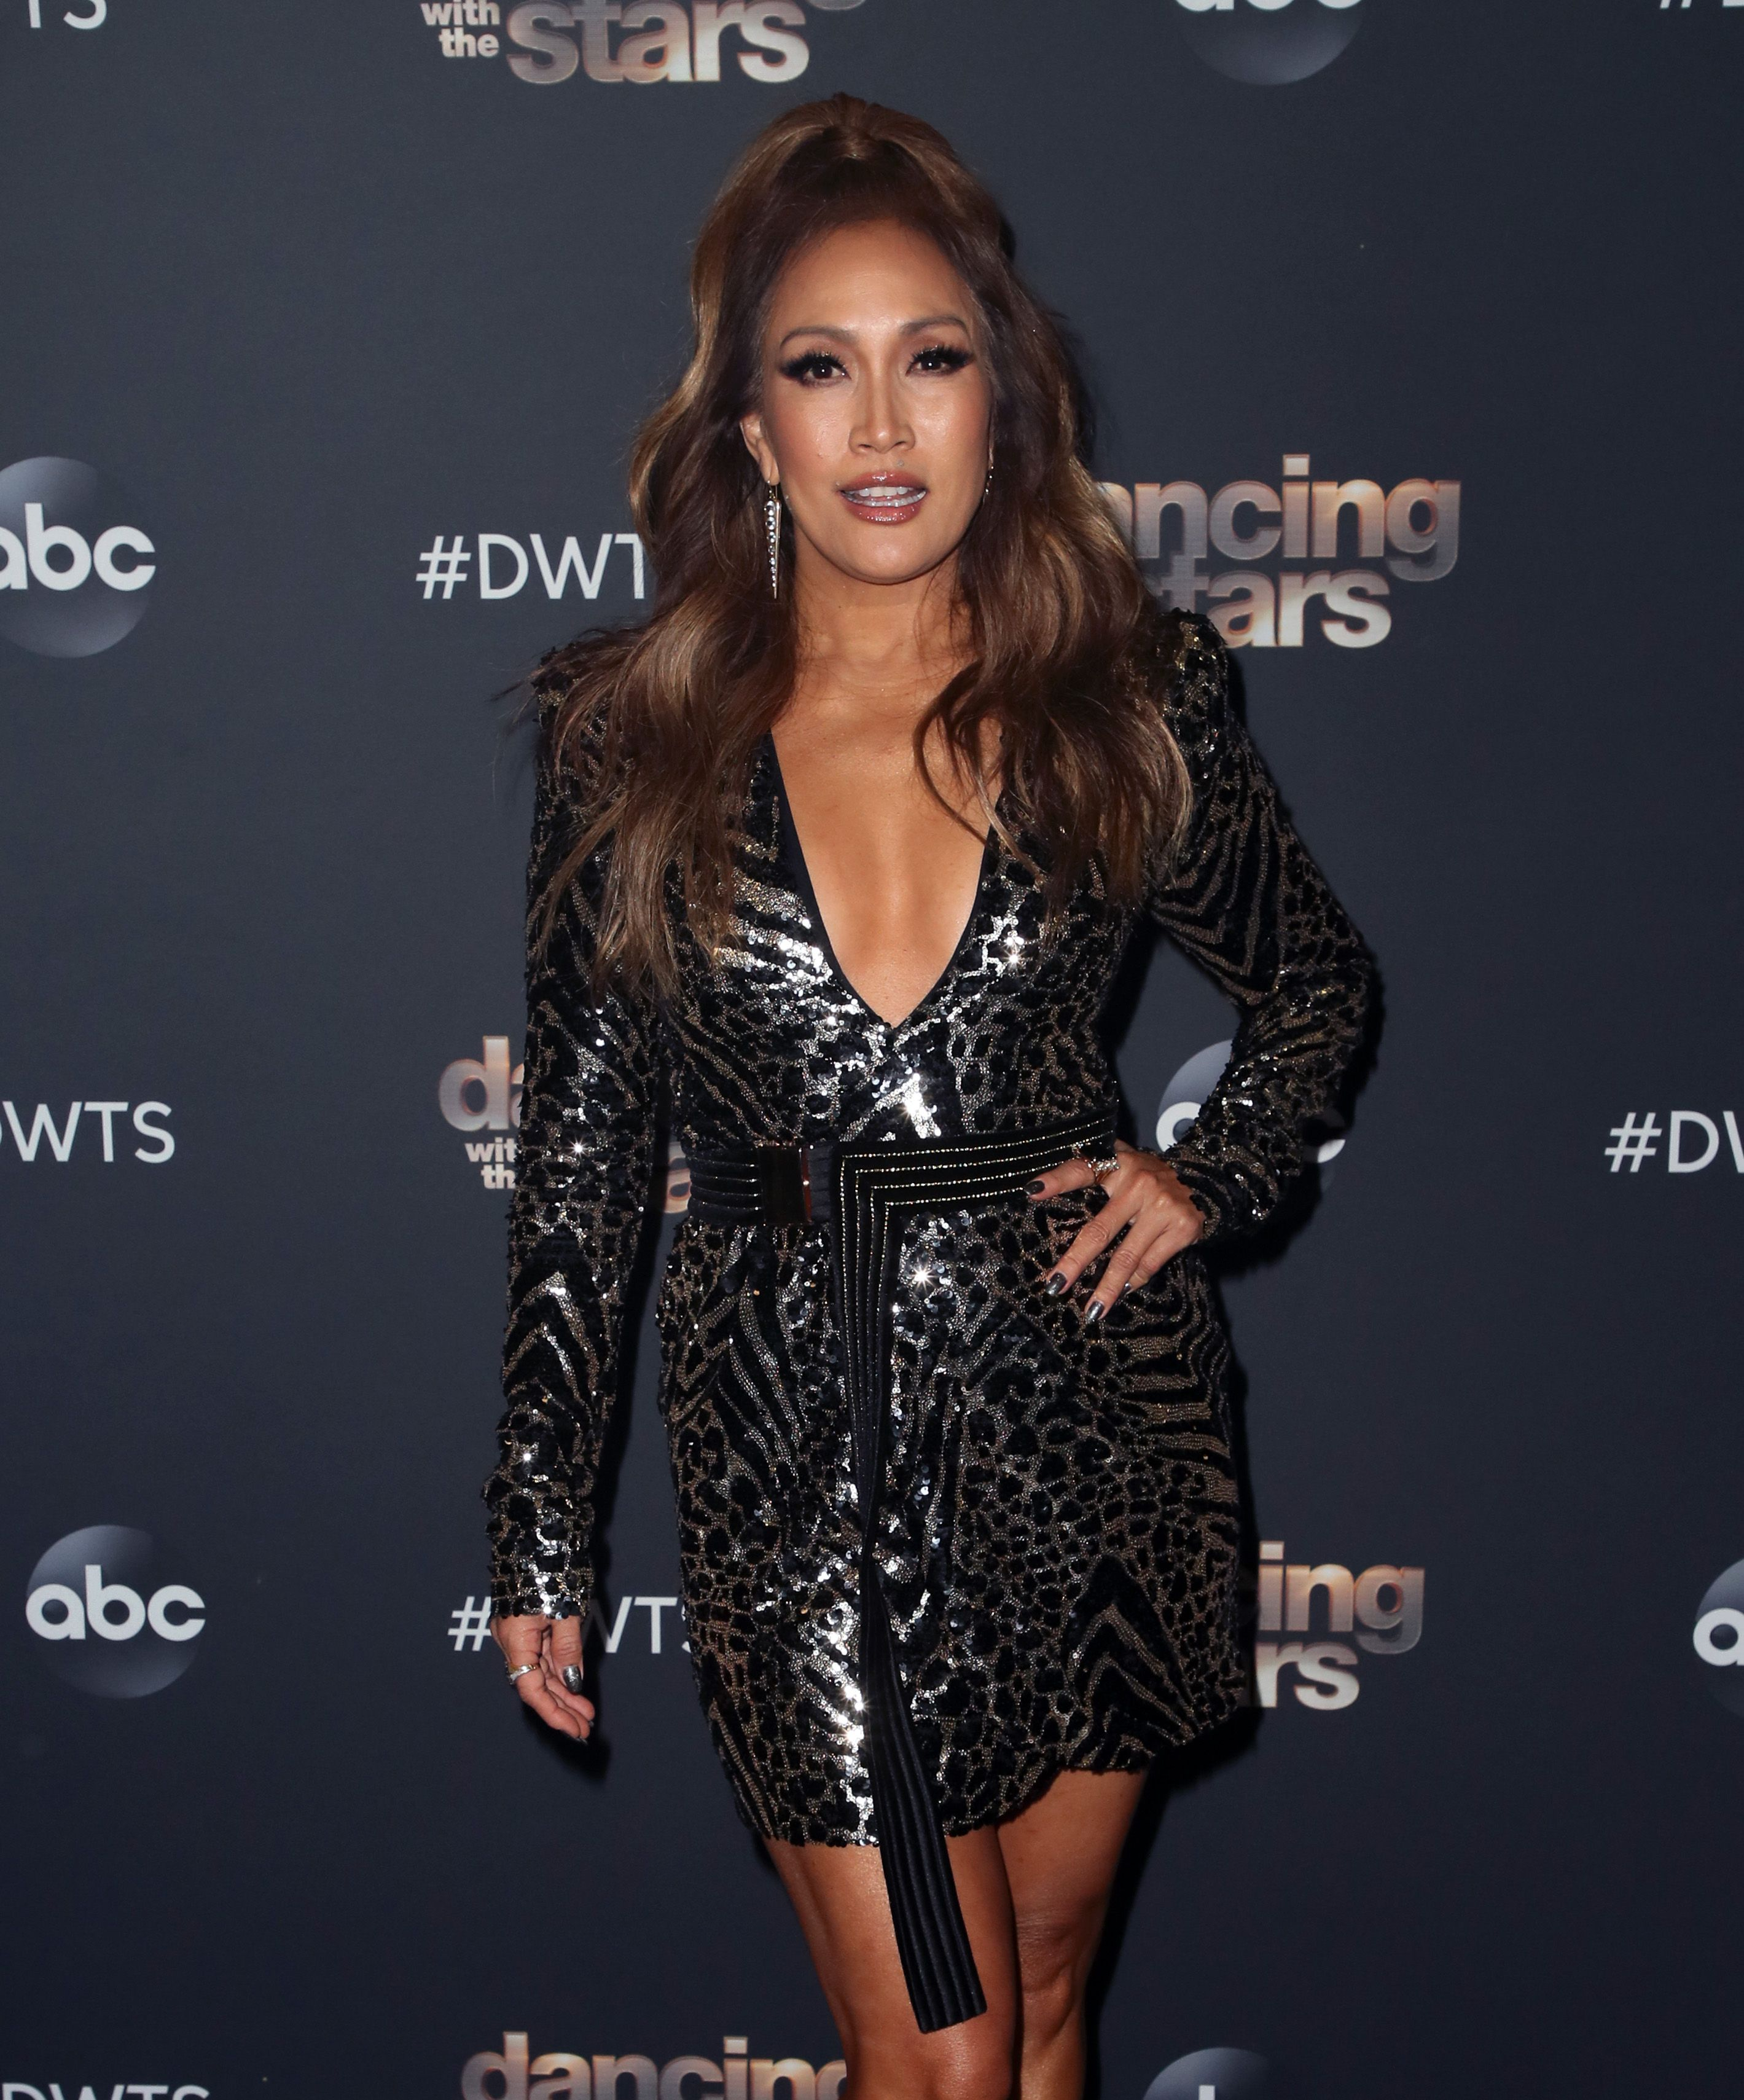 'DWTS' Judge Carrie Ann Inaba Is 'A Little Irritated' With America's Vote